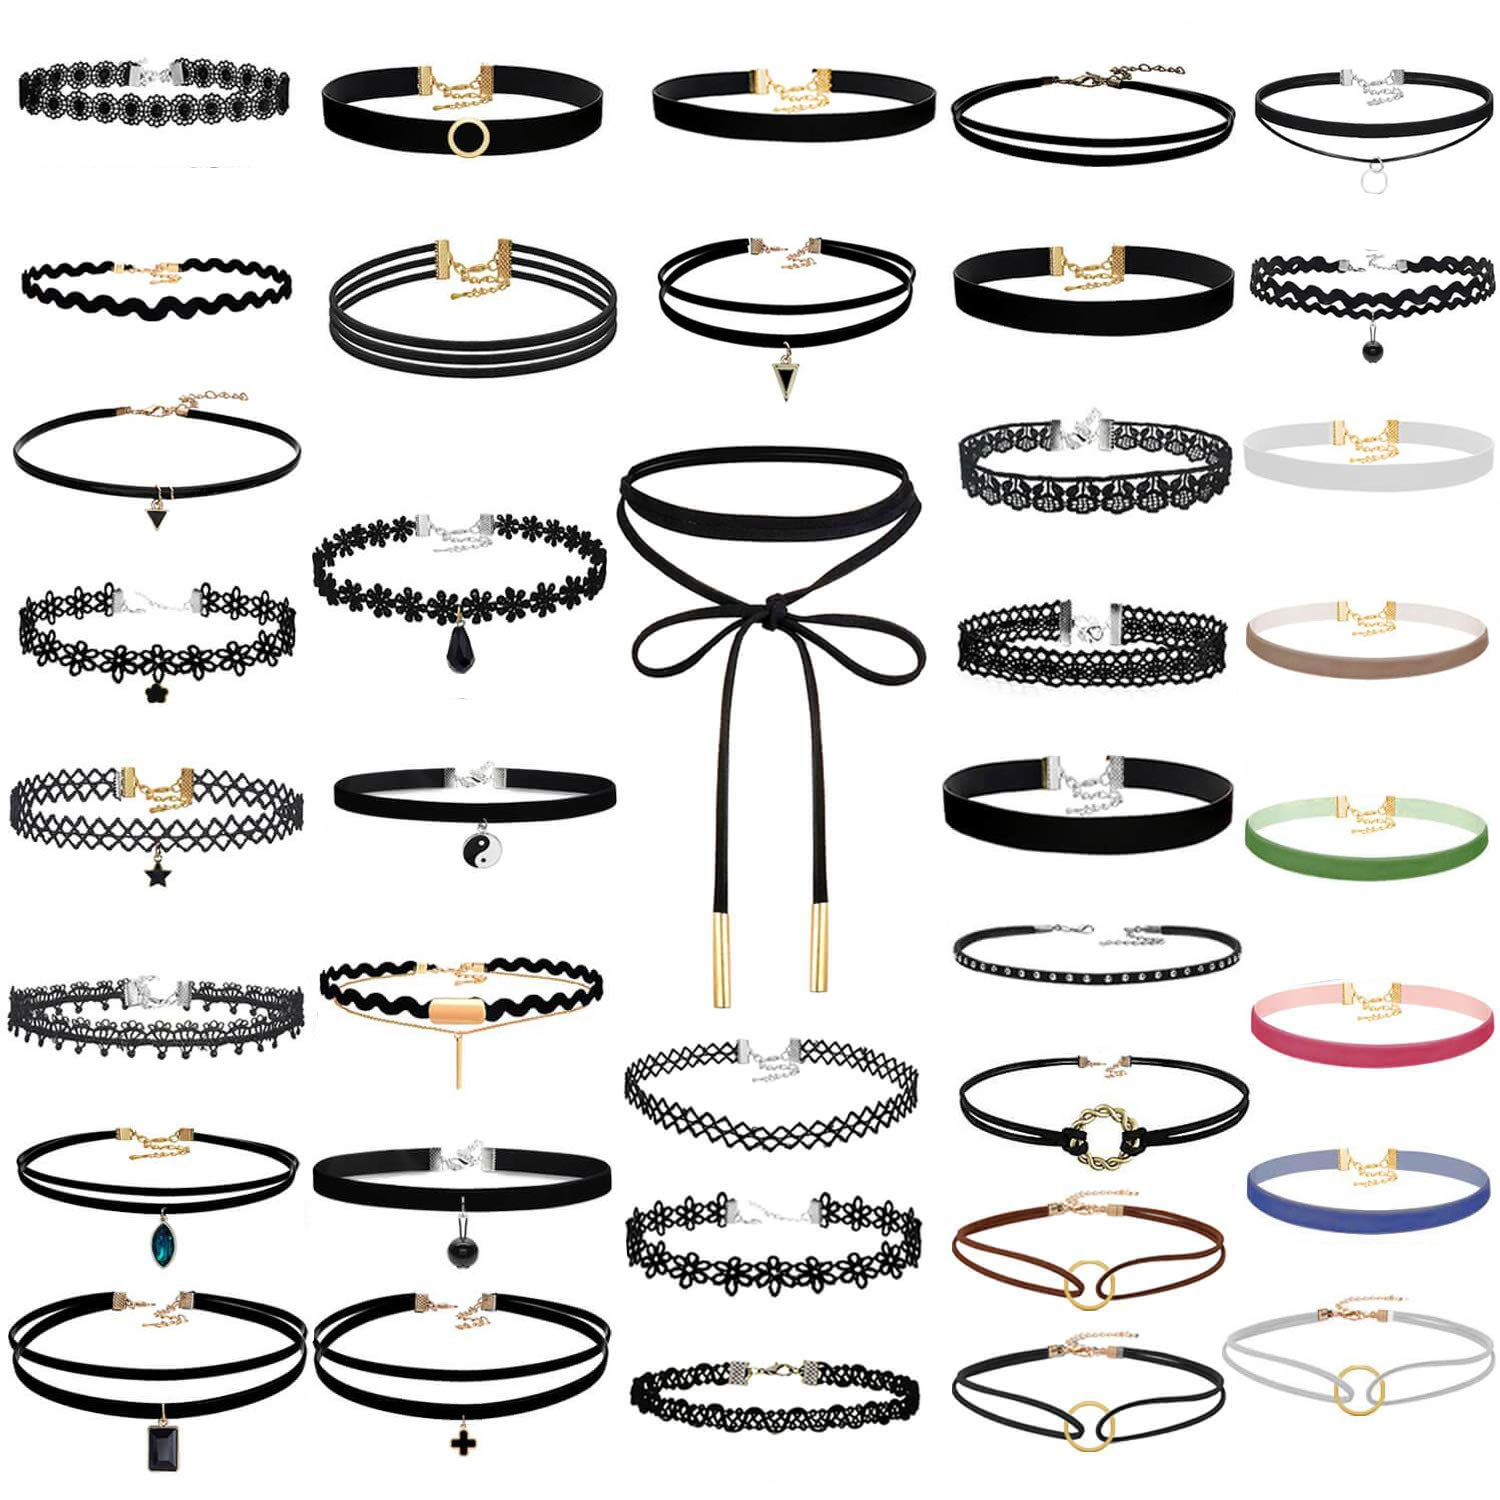 Paxcoo 50Pcs Black Choker Necklaces Set for Teen Girls and Women by PAXCOO